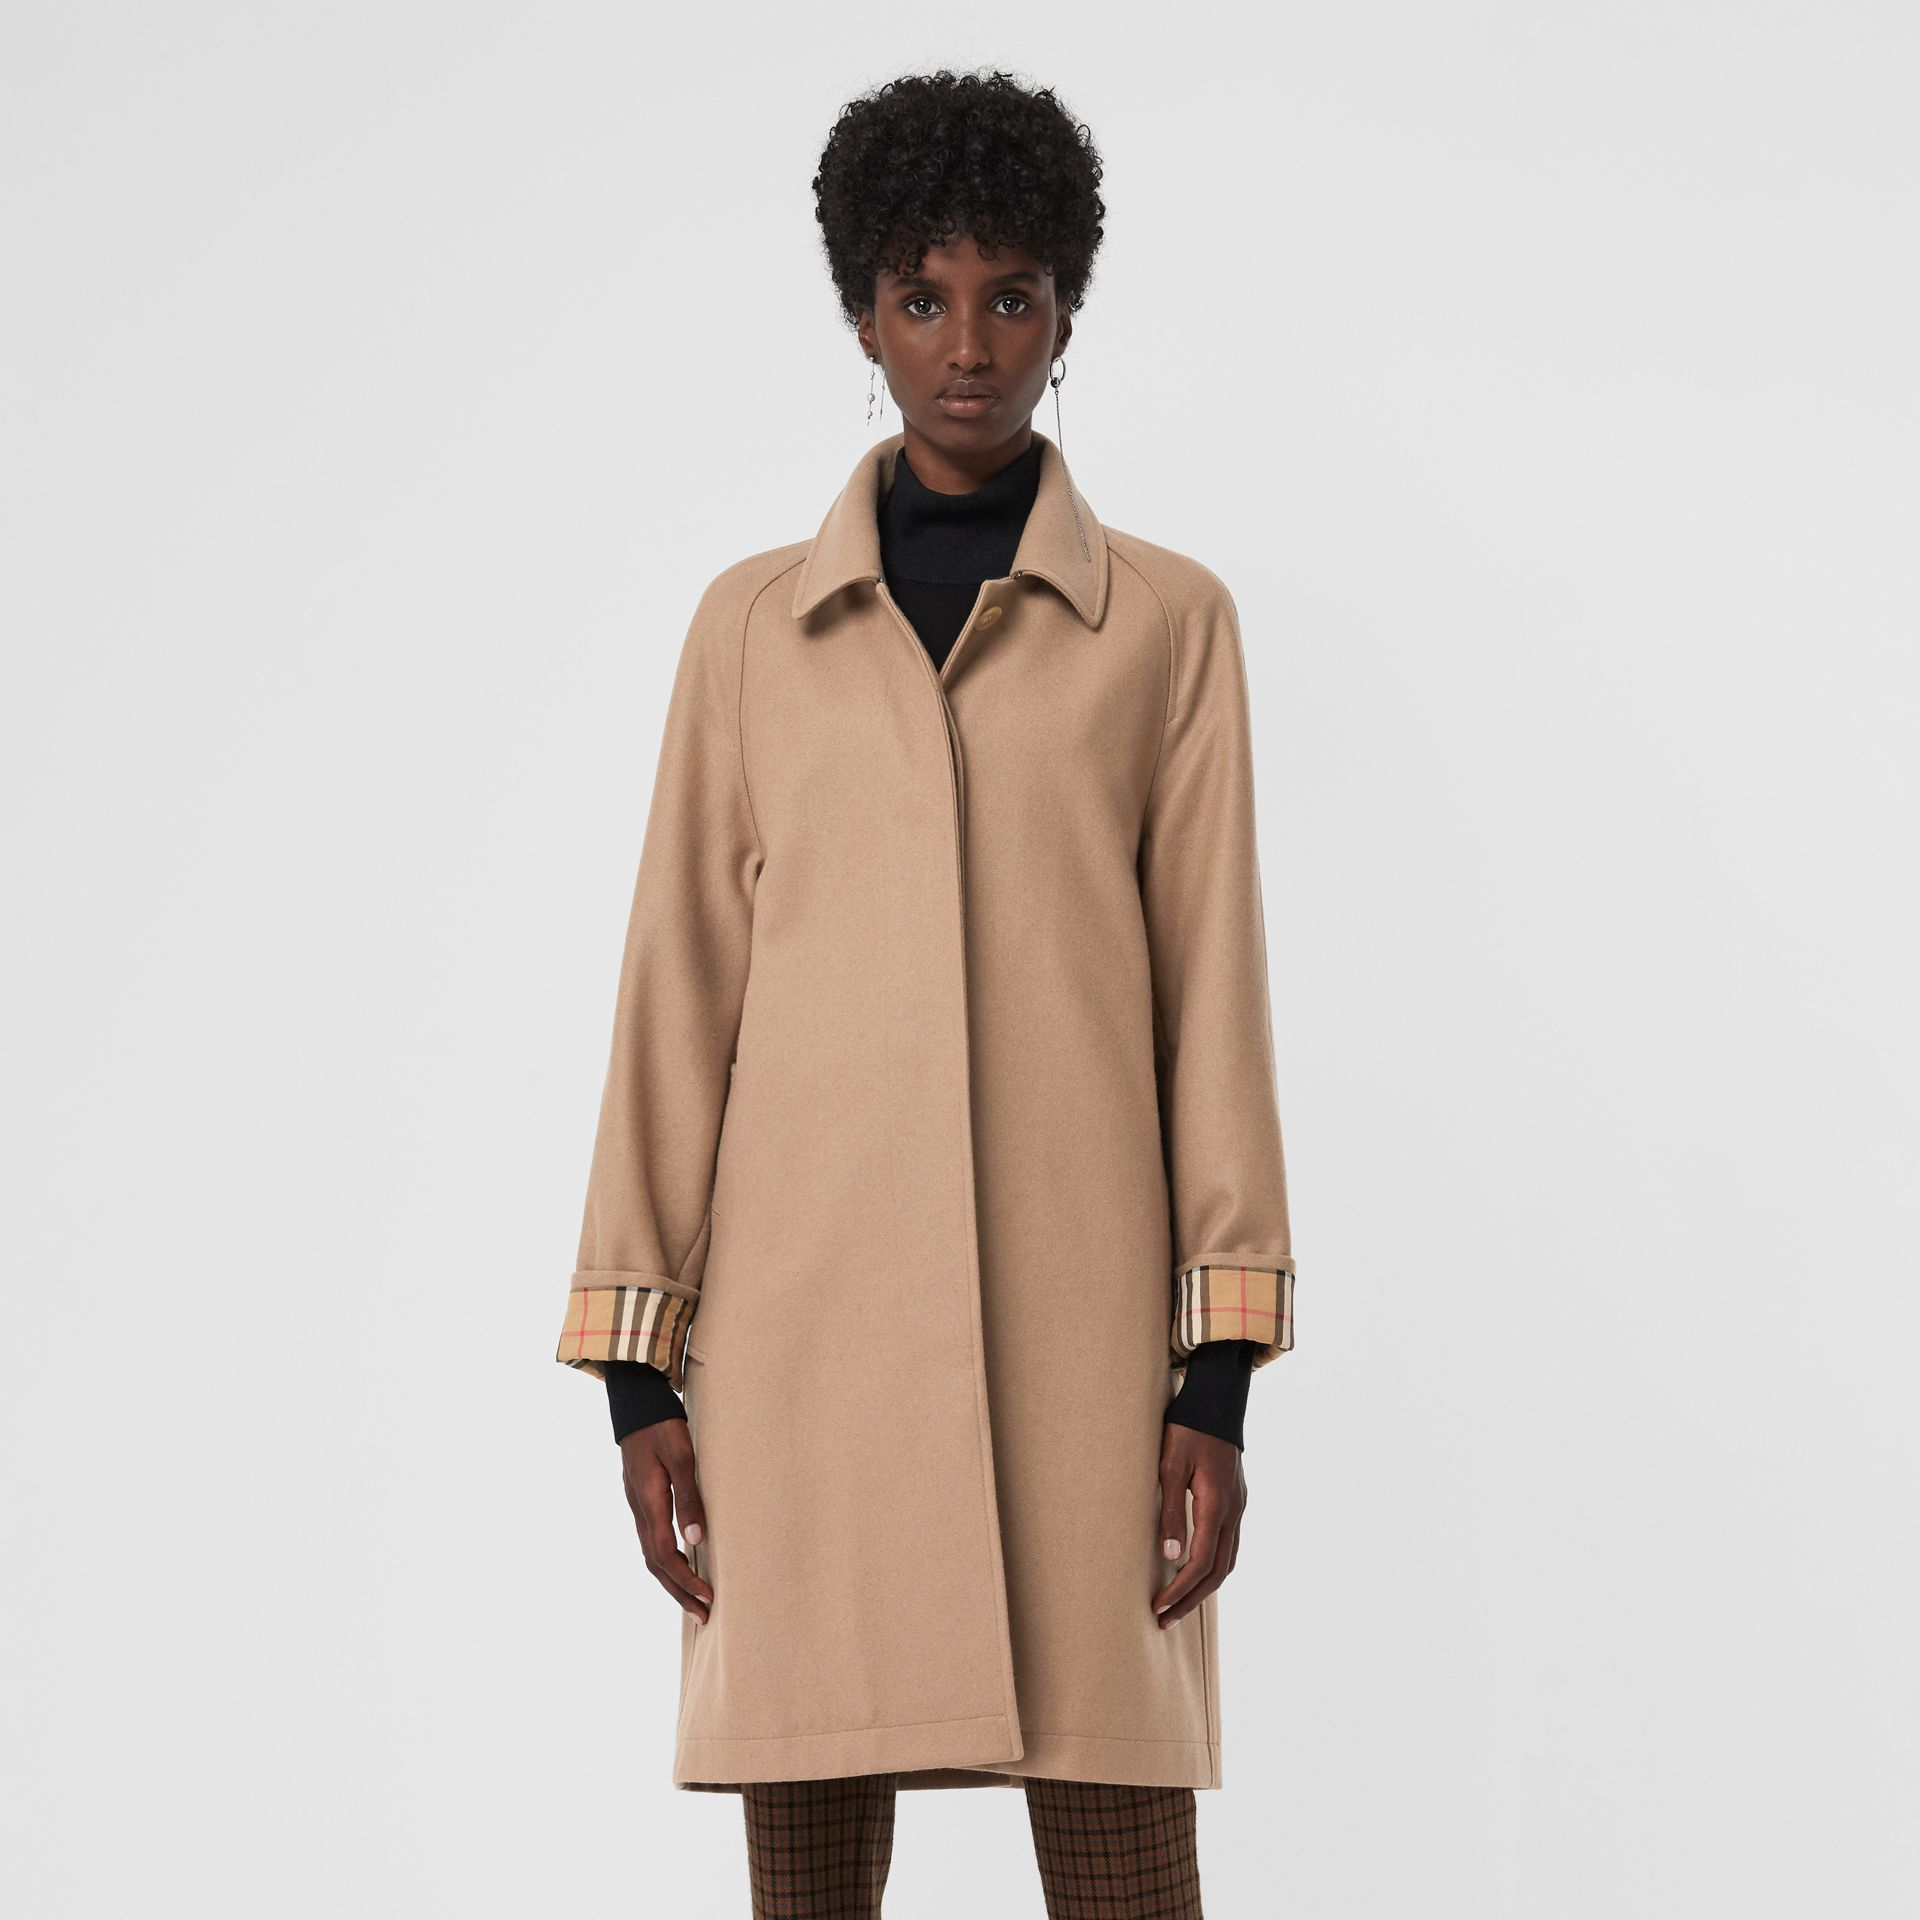 Cashmere Car Coat in Camel - Women | Burberry Australia - gallery image 5